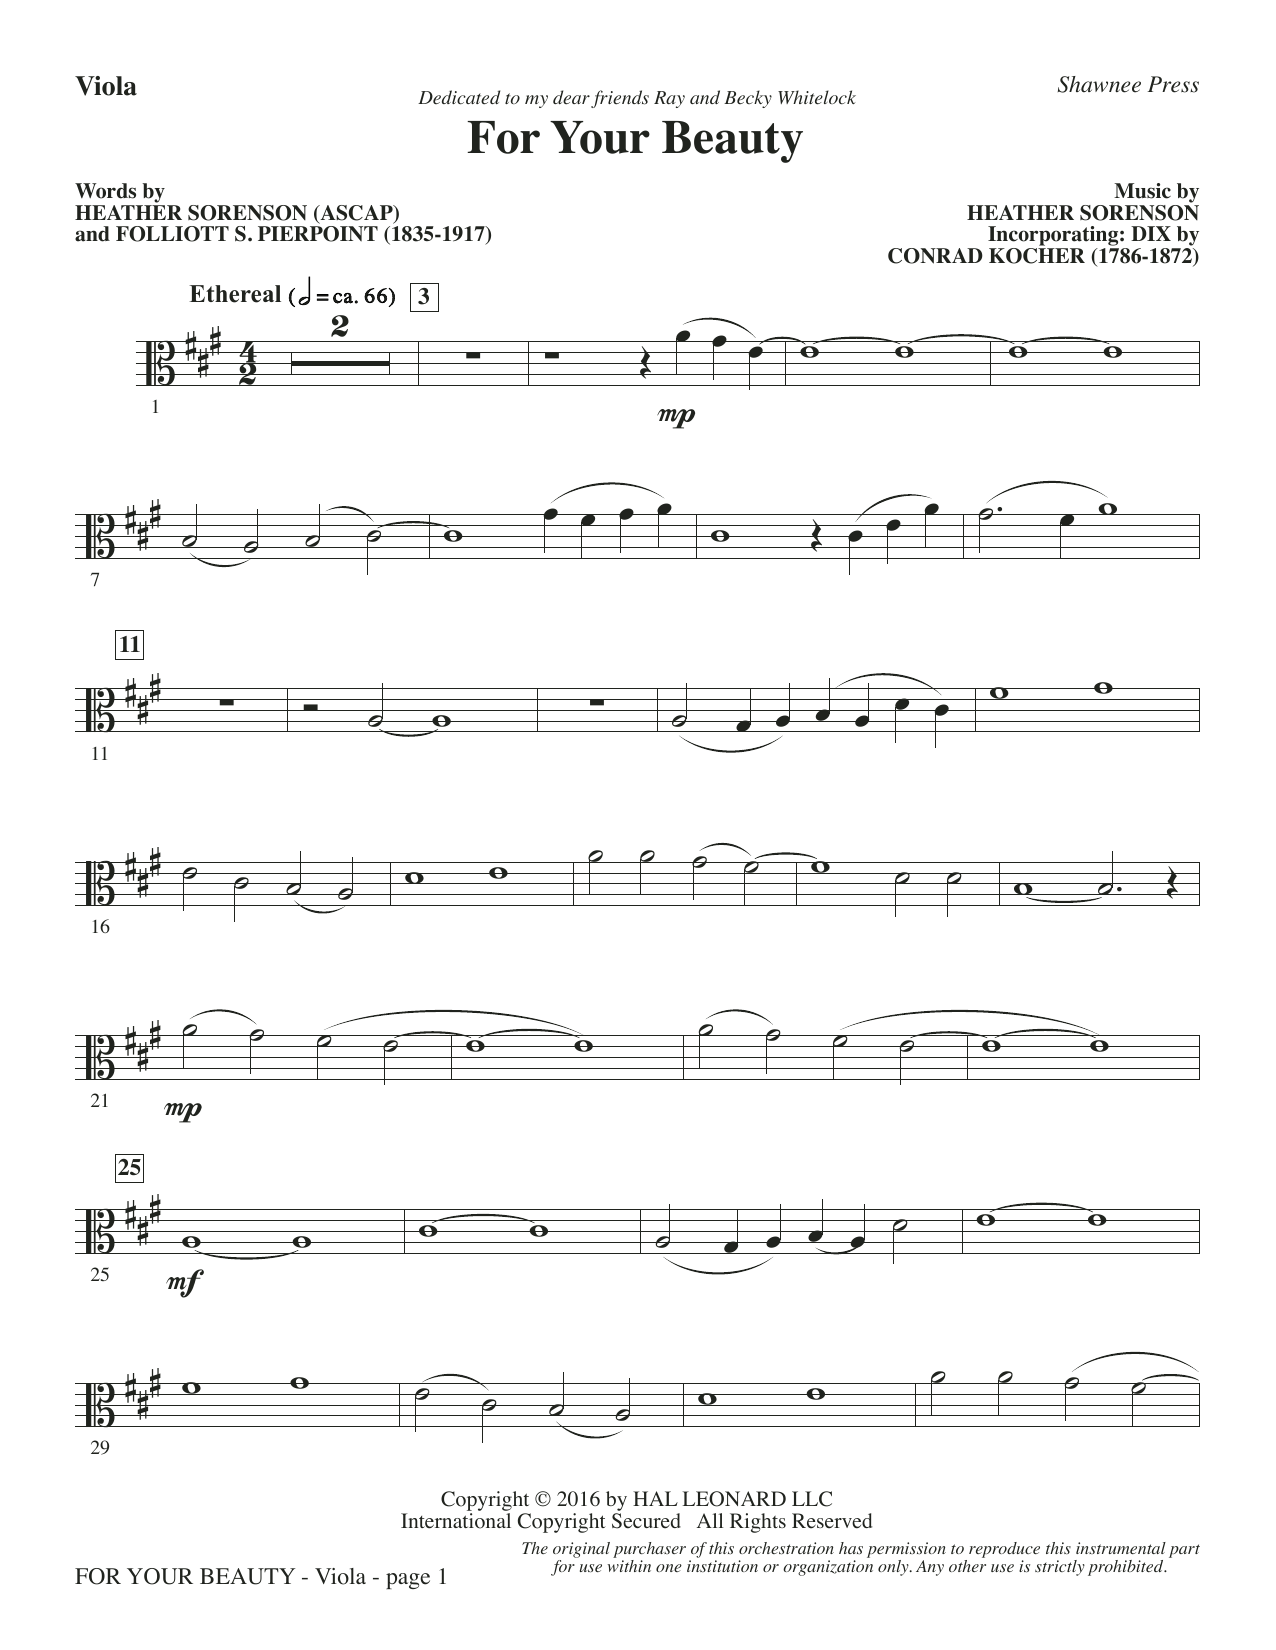 For Your Beauty - Viola Sheet Music